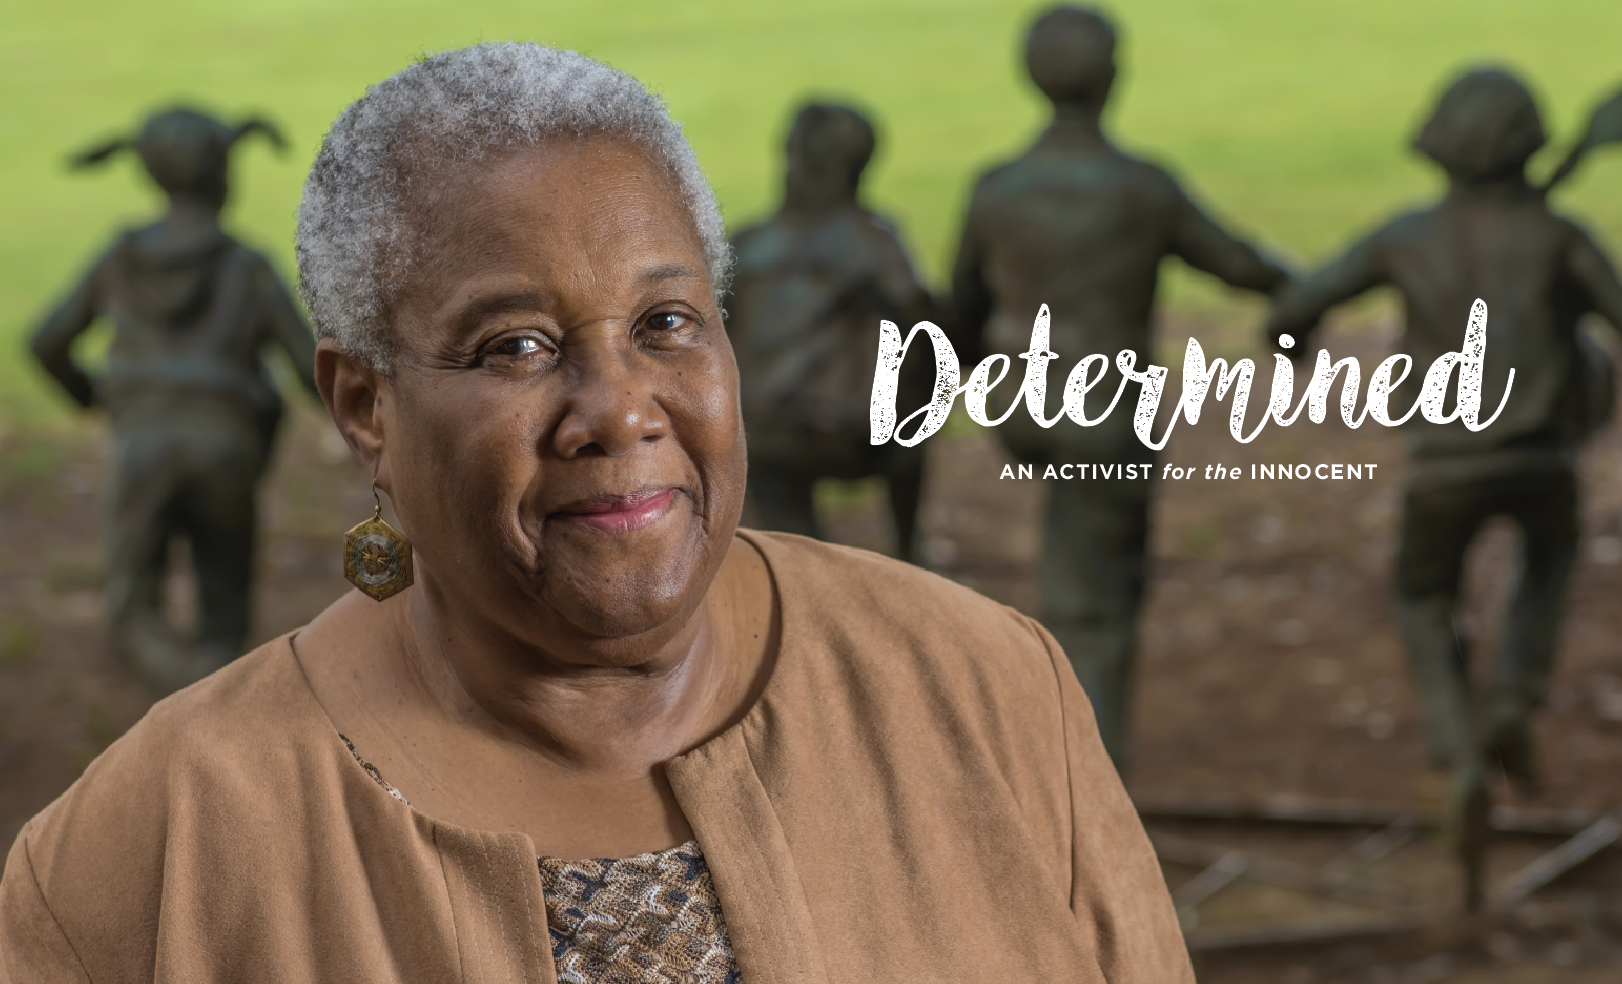 Determined: An Activist for the Innocent; Sophia Bracy